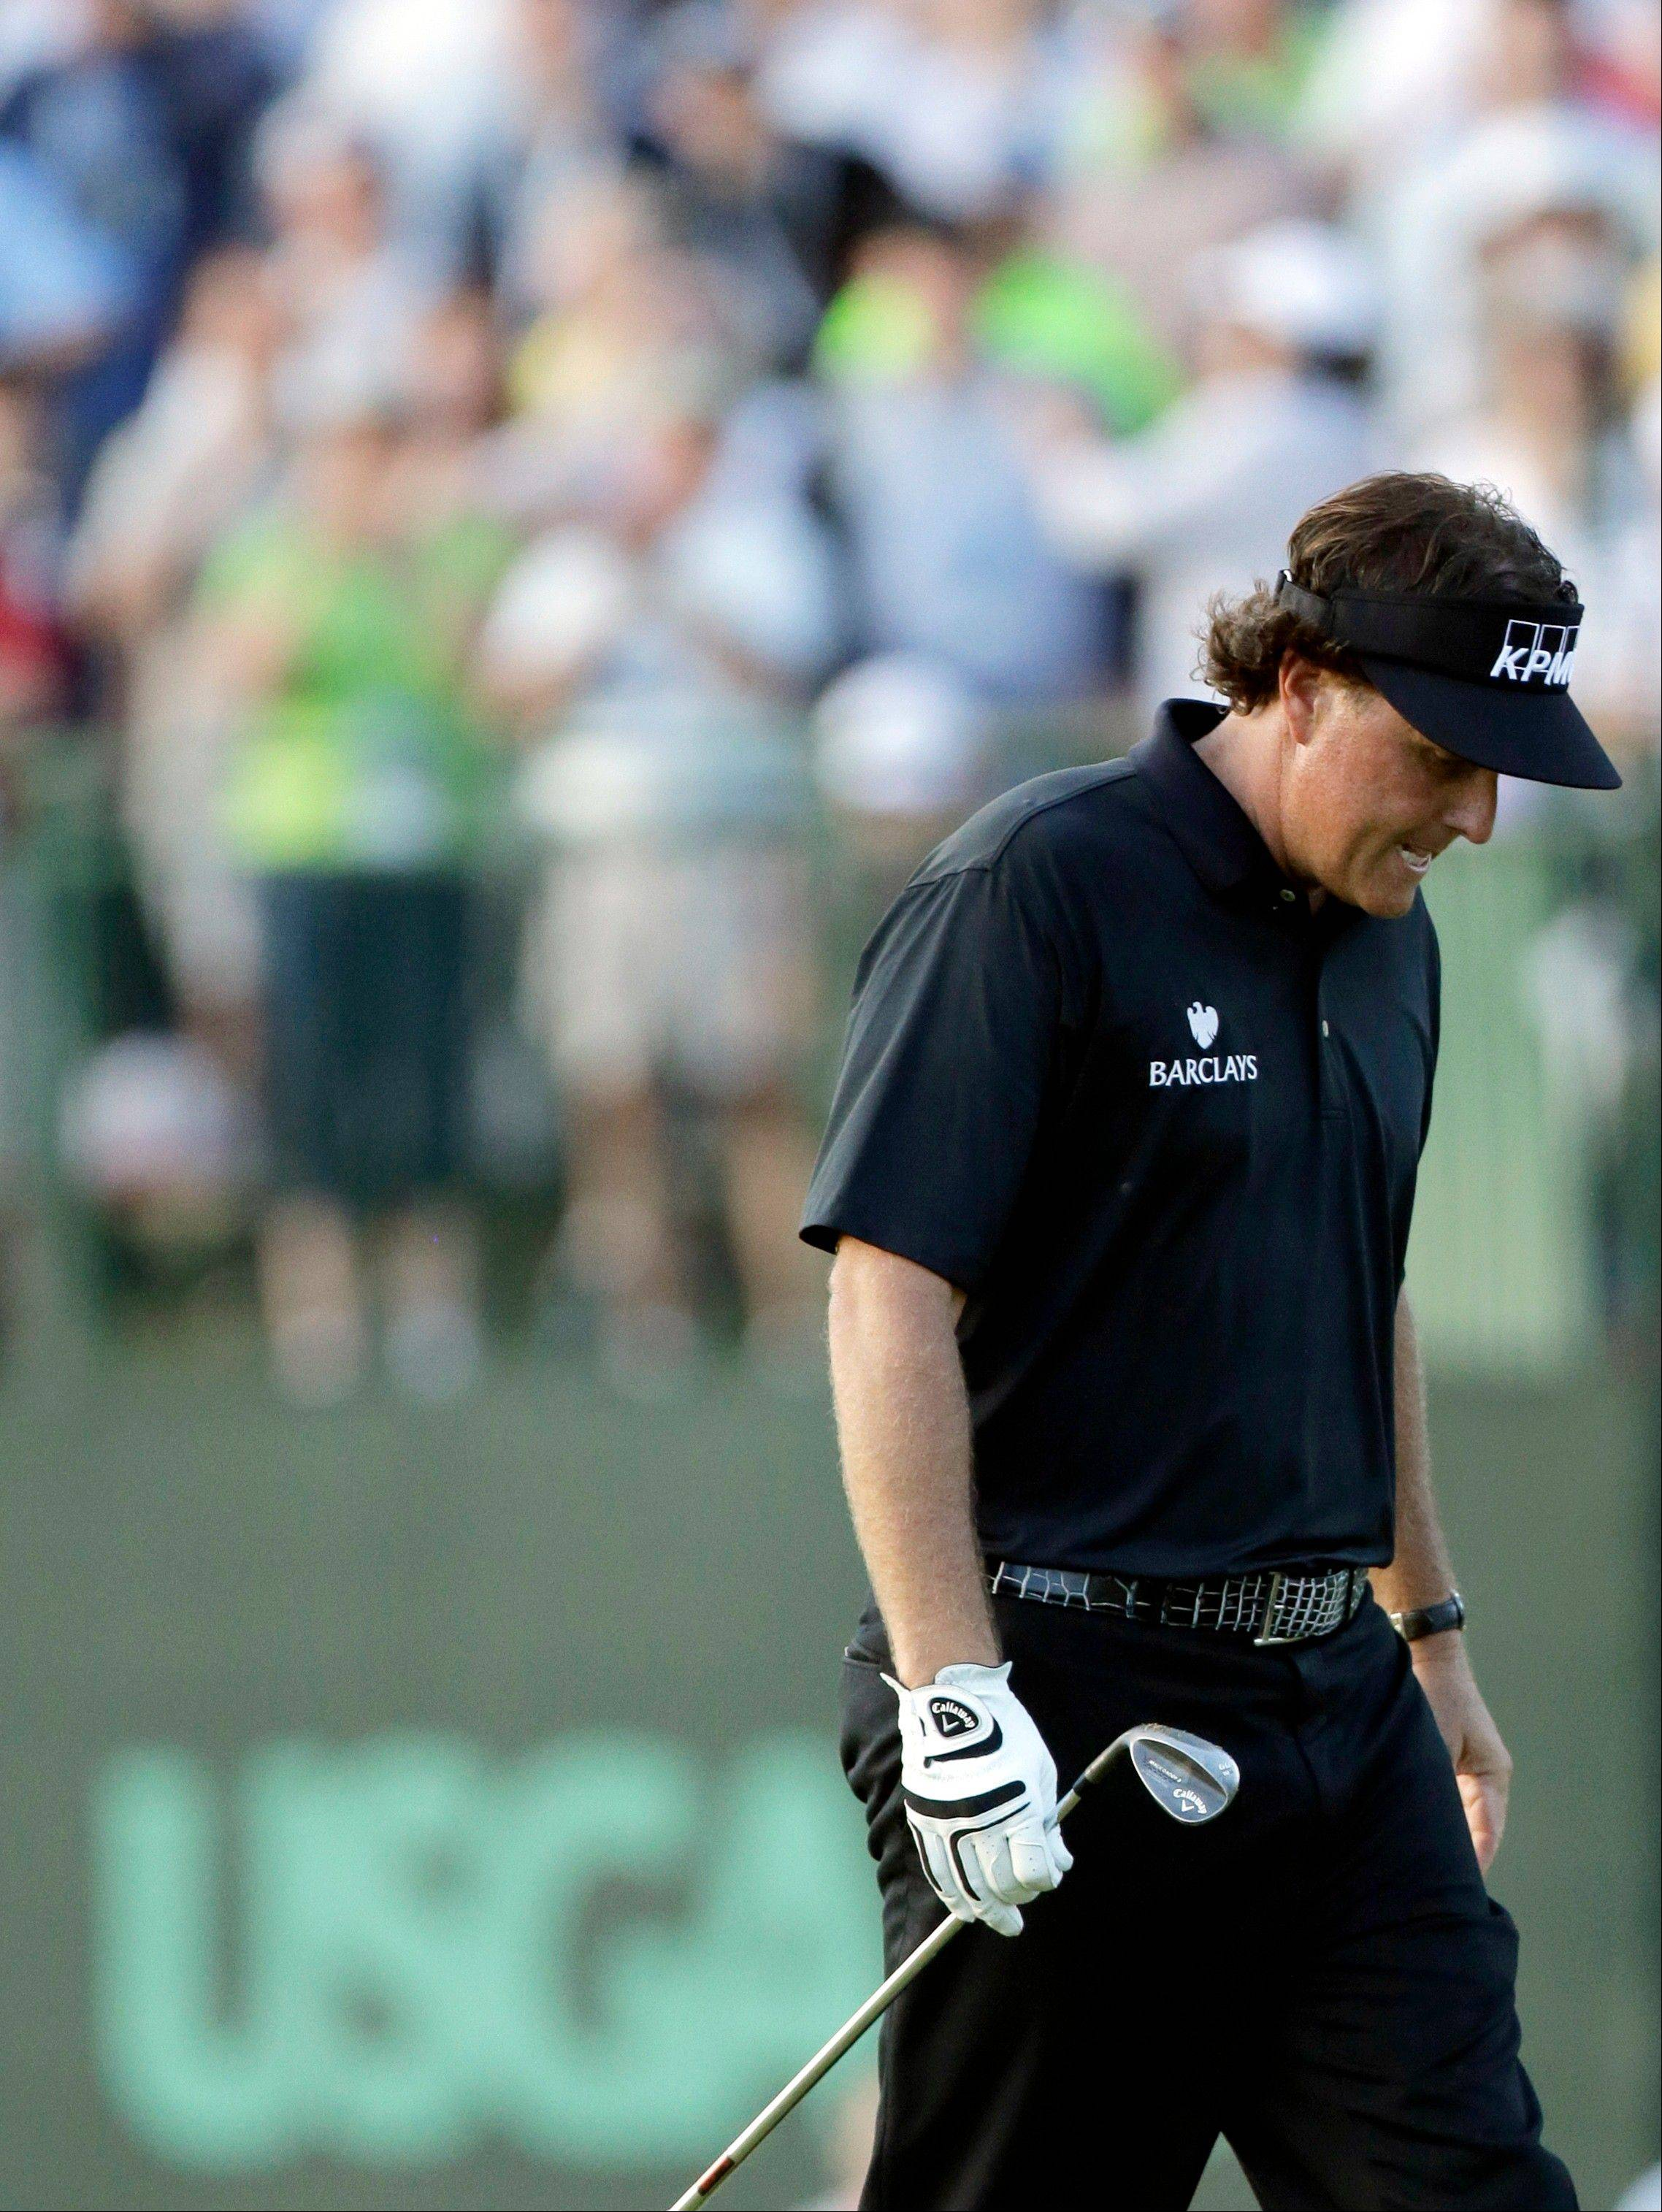 Phil Mickelson reacts after missing a shot on the 18th hole during the fourth round of the U.S. Open golf tournament at Merion Golf Club, Sunday, June 16, 2013, in Ardmore, Pa.